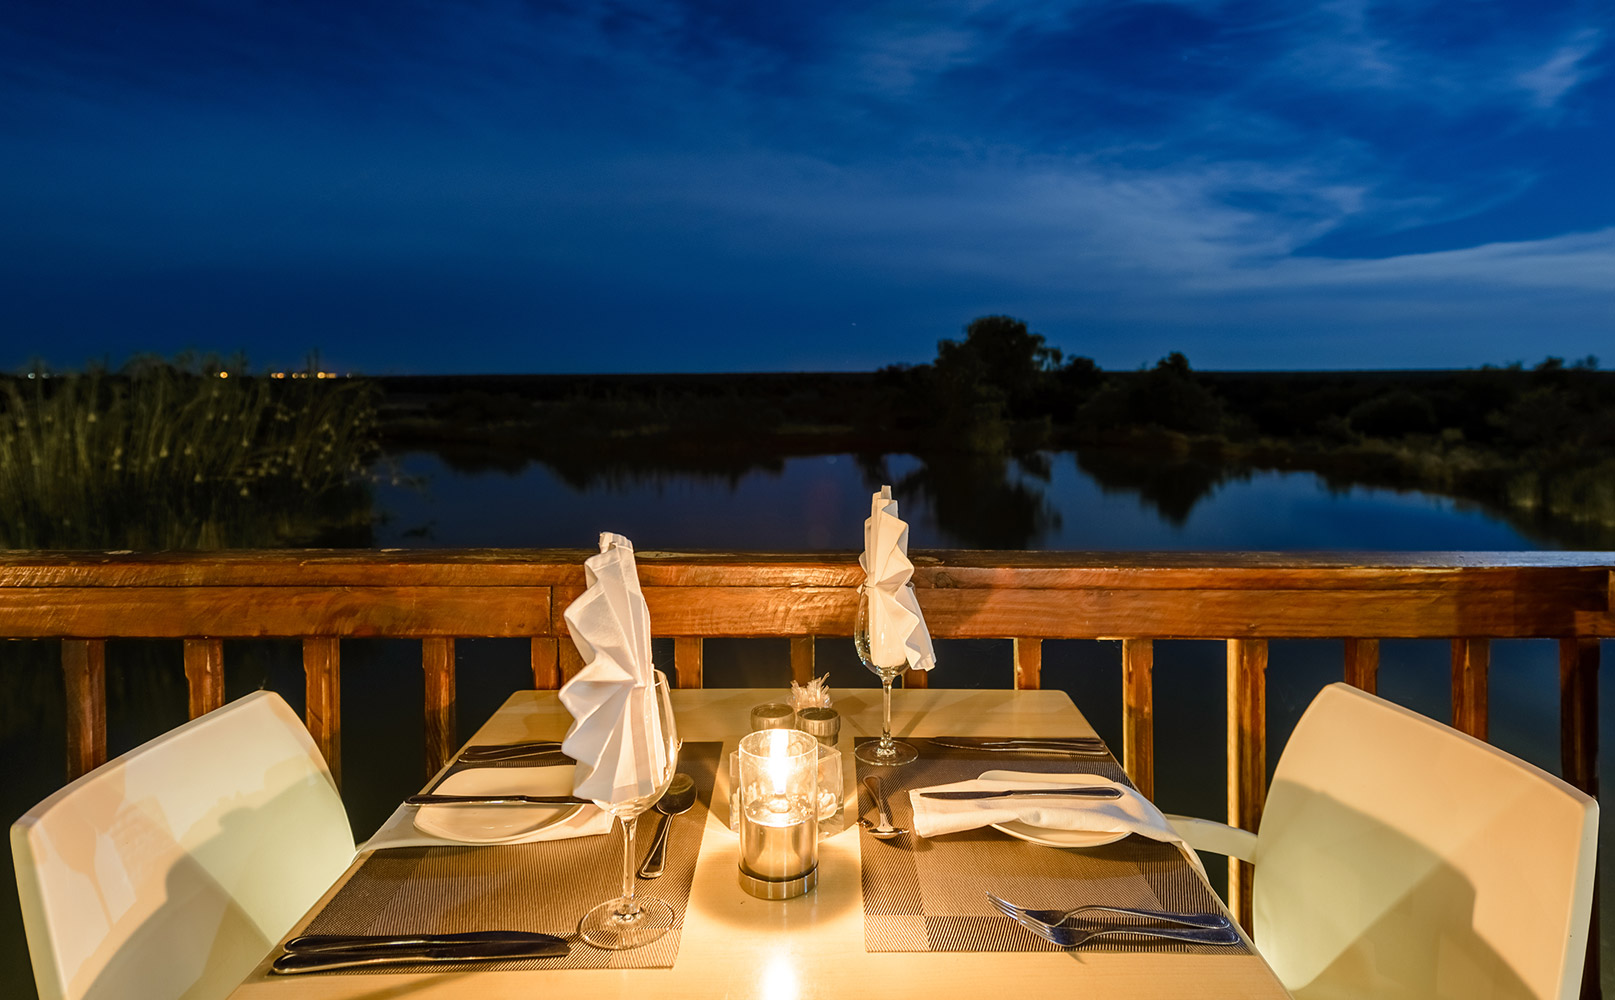 Dinner at Dinokeng Game Reserve